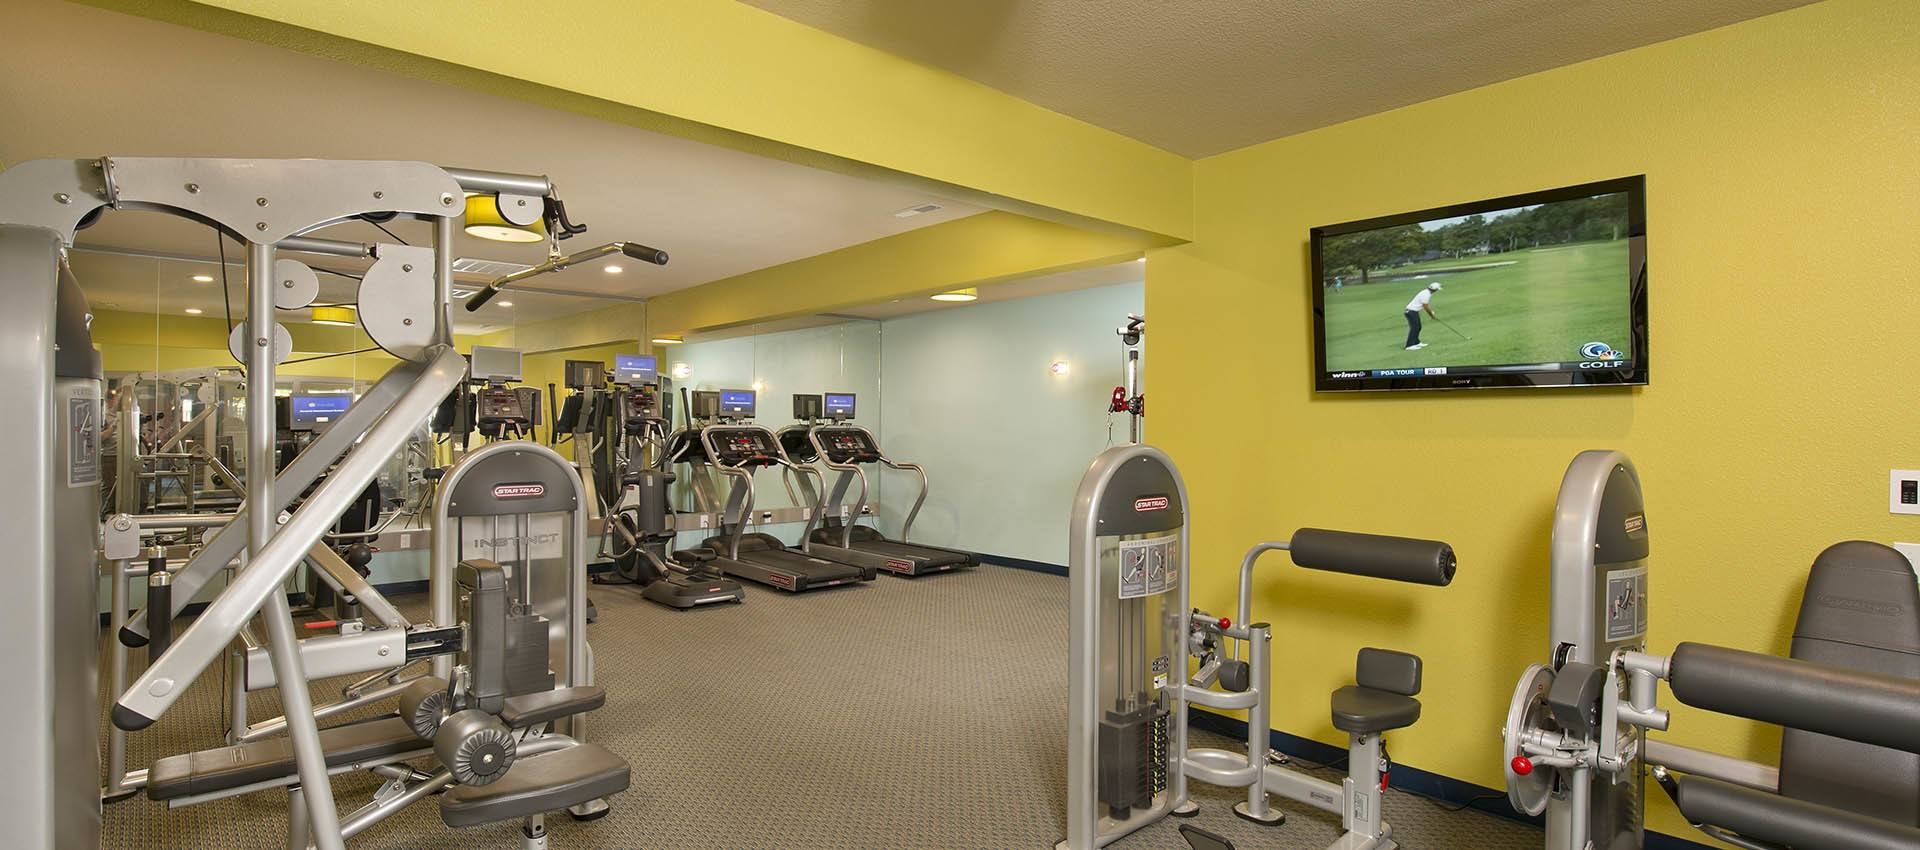 Fitness center at apartments in Vancouver, WA